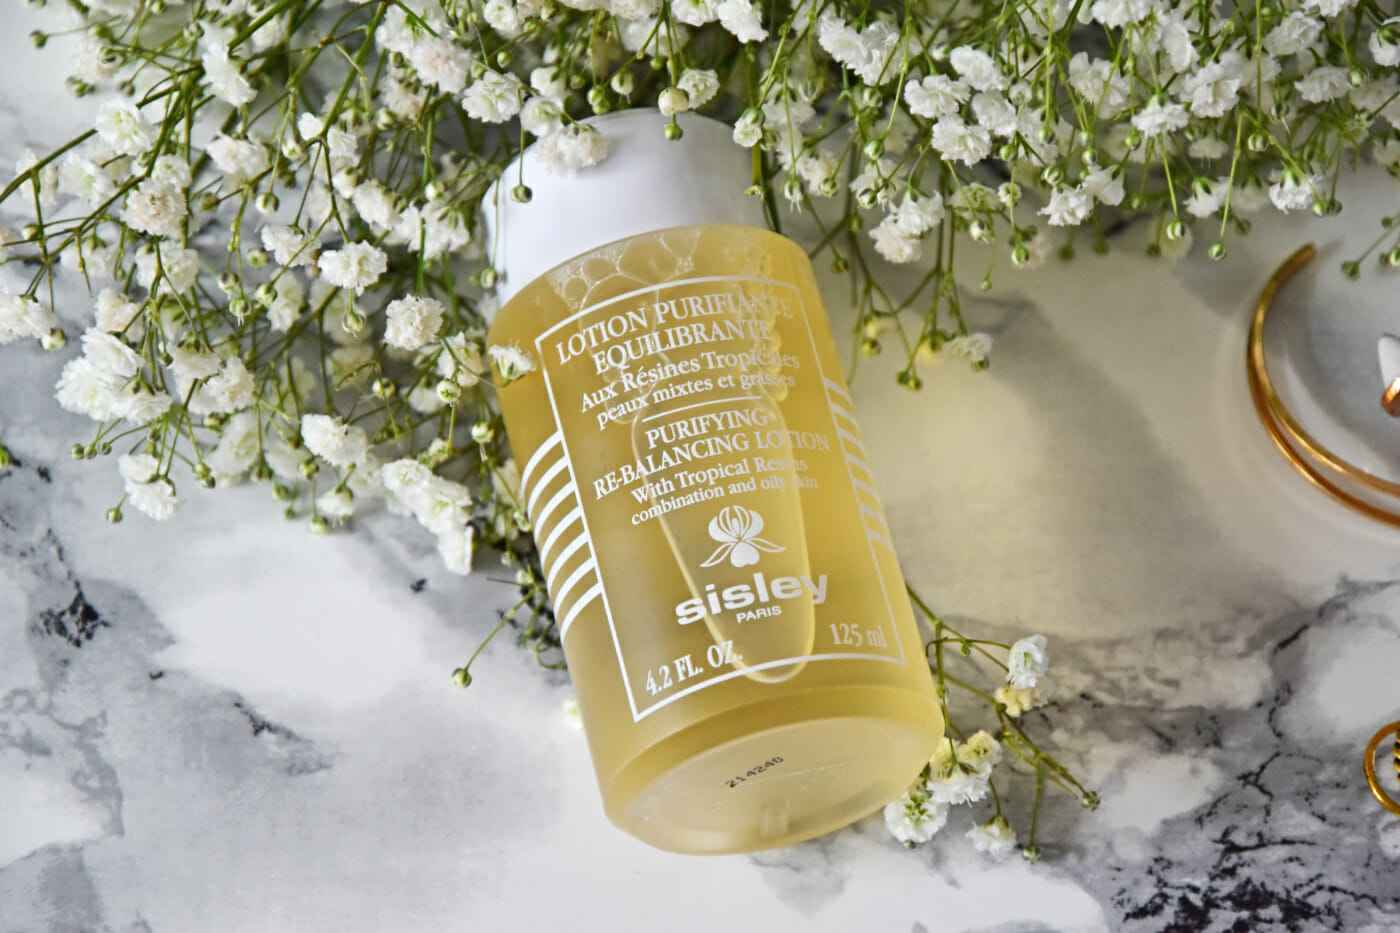 sisley purifying lotion skin care beauty